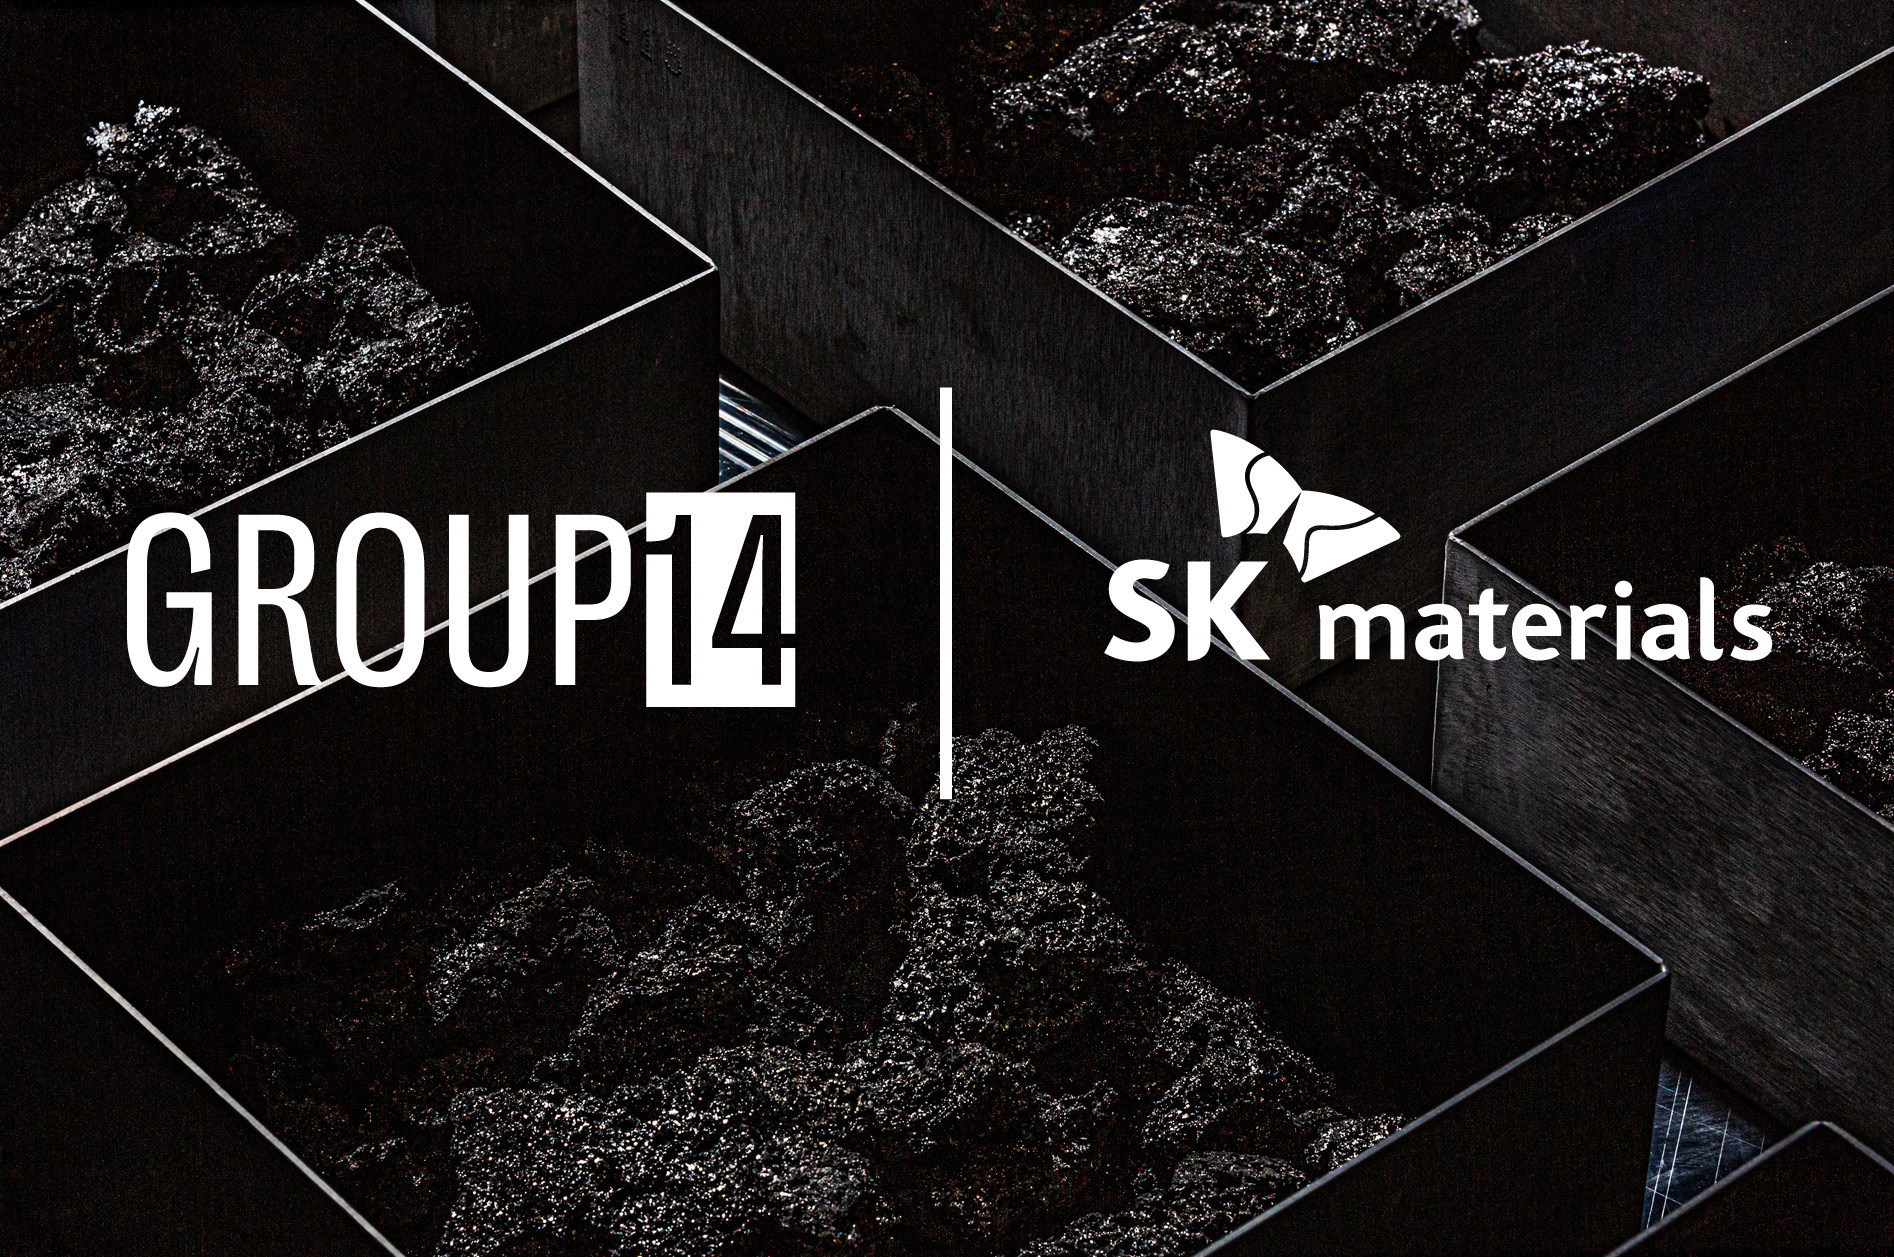 Group14 Technologies Announces Joint Venture with SK materials to Accelerate Global Dual Sourcing for Lithium-Silicon Battery Materials